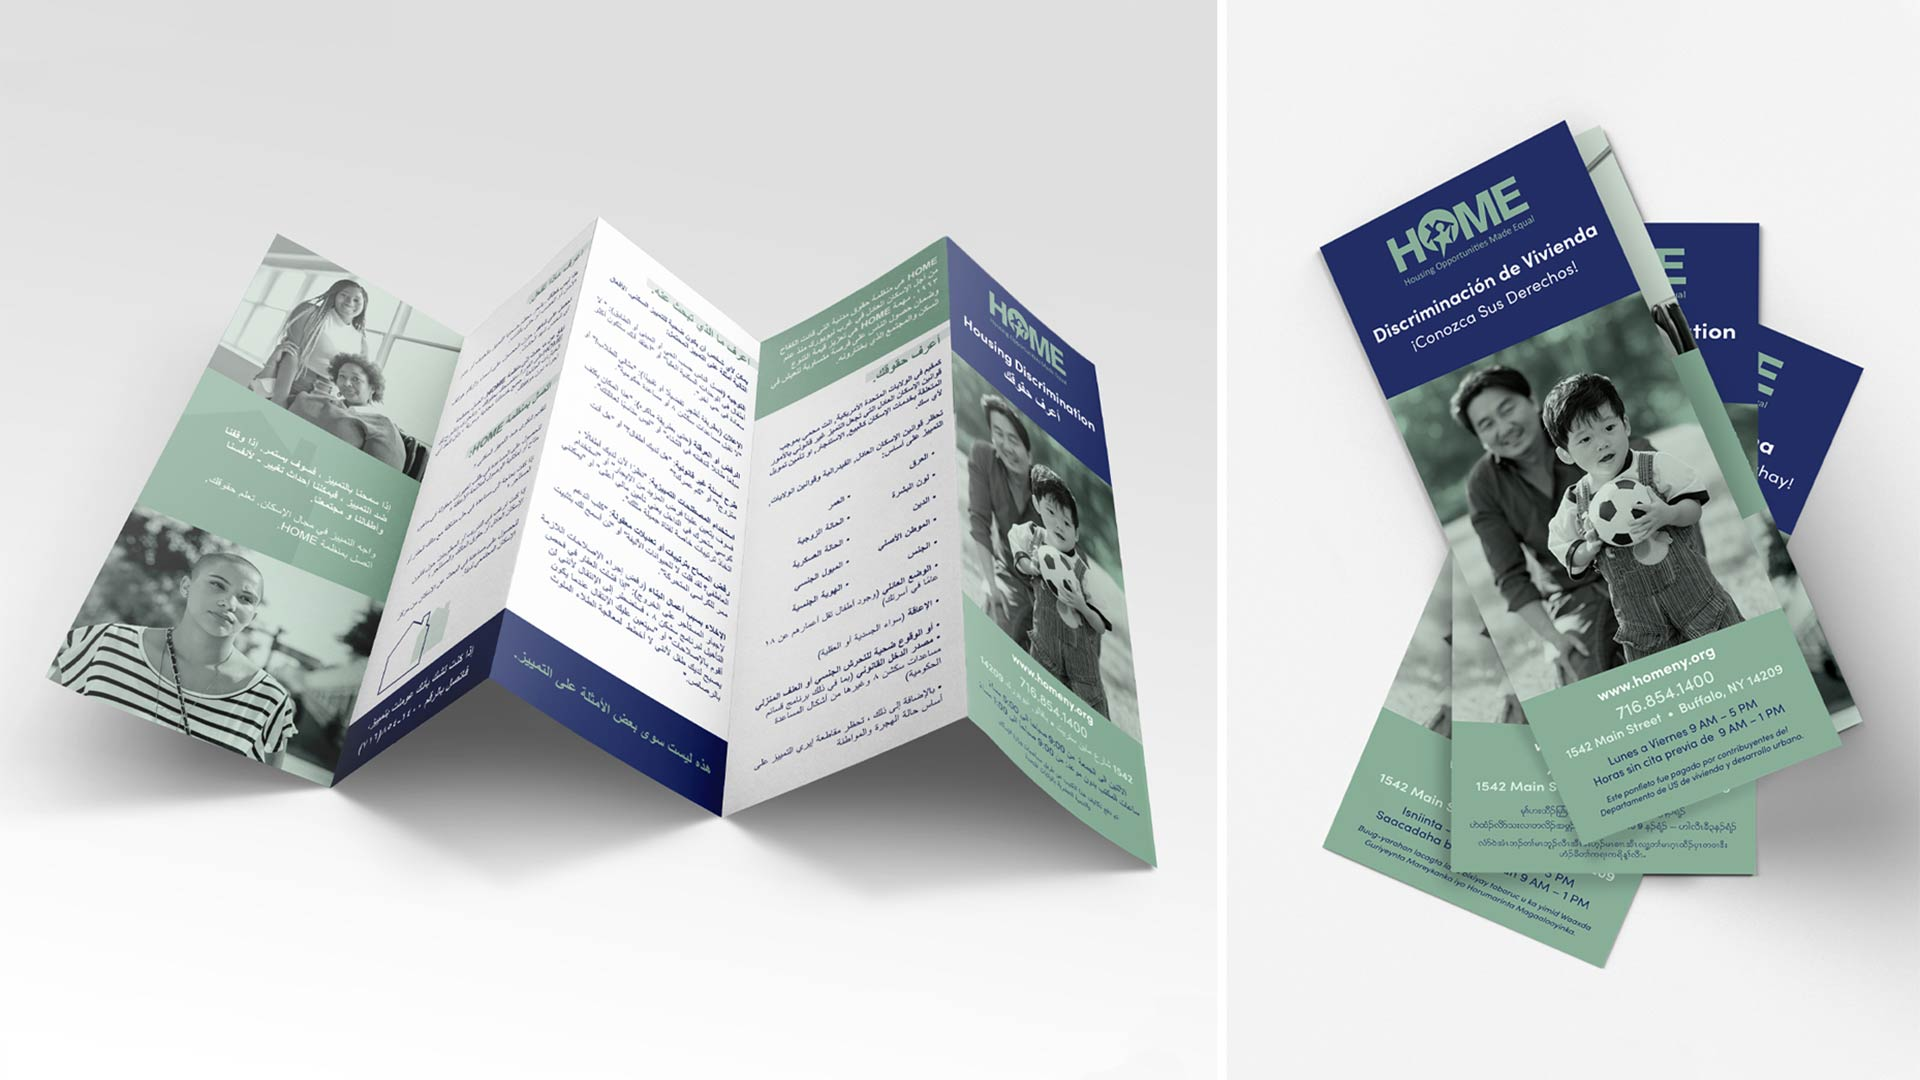 A set of brochures designed by OtherWisz Creative for a non-profit, with versions in Arabic and Spanish